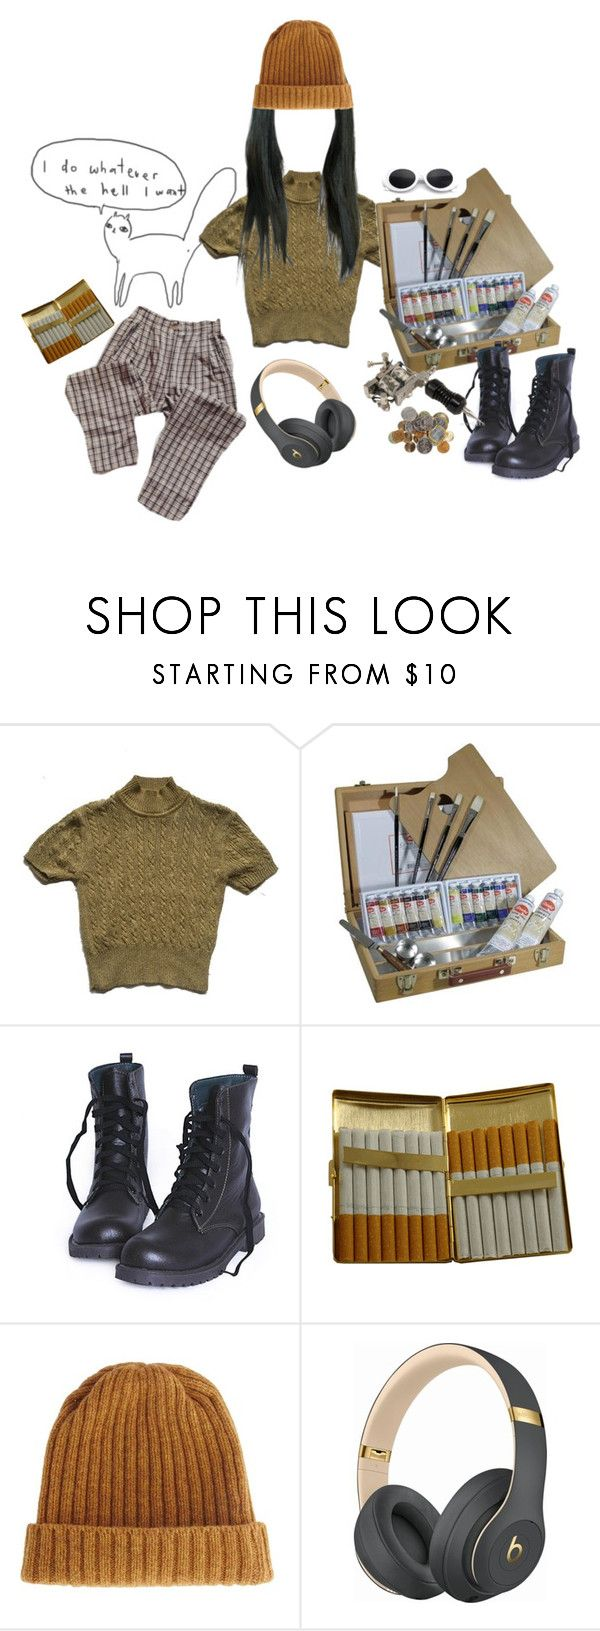 """me starterpack lol"" by savlinem on Polyvore featuring KING, ASOS und Beats by Dr. Dre"